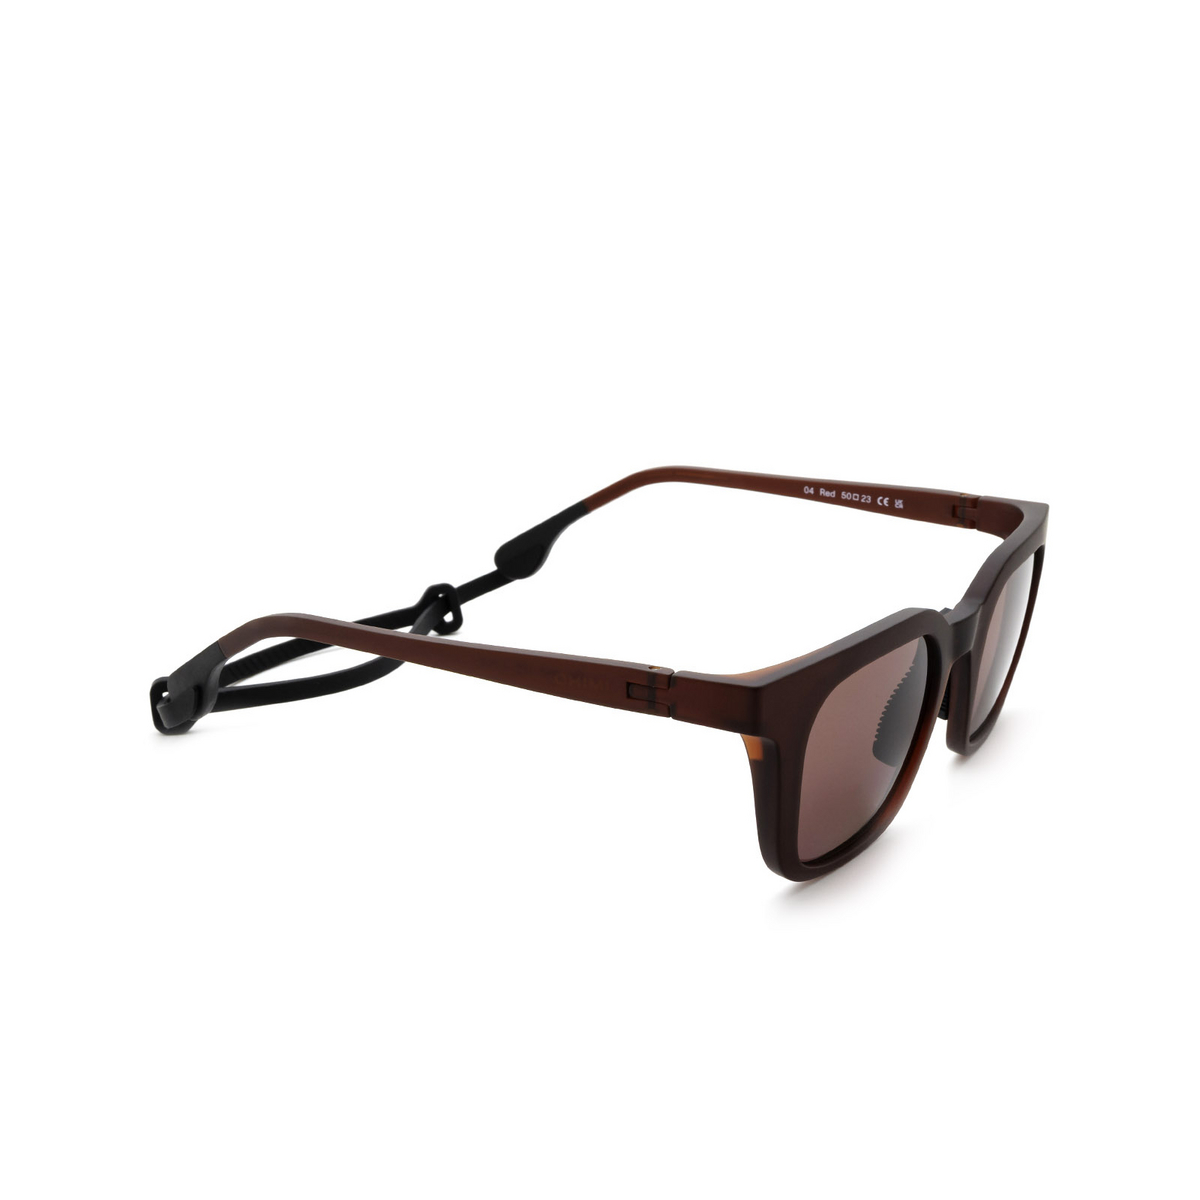 Chimi® Square Sunglasses: 04 ACTIVE color Red - three-quarters view.